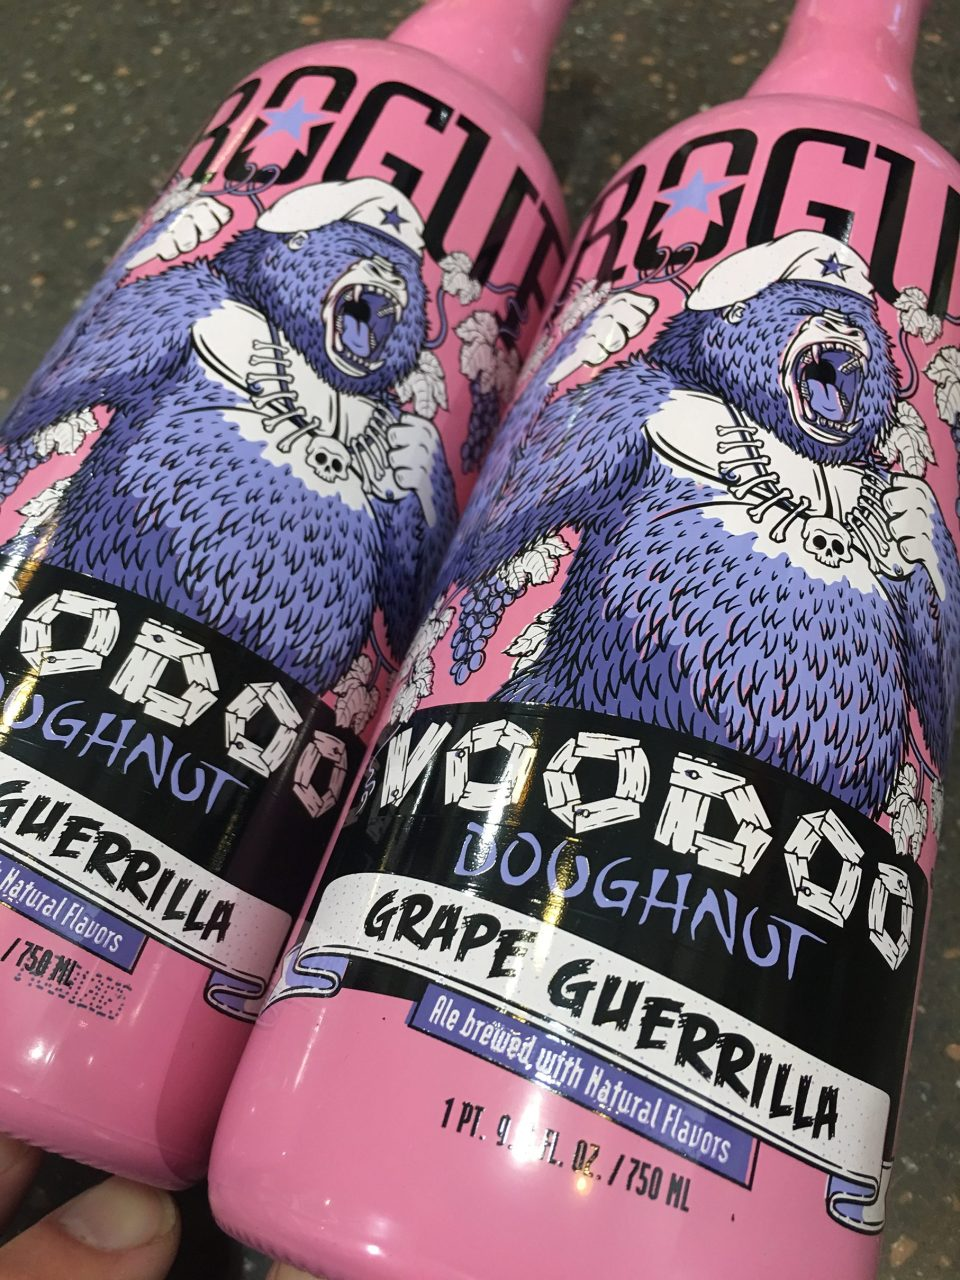 Rogue Voodoo Doughnut Grape Guerrilla bottles